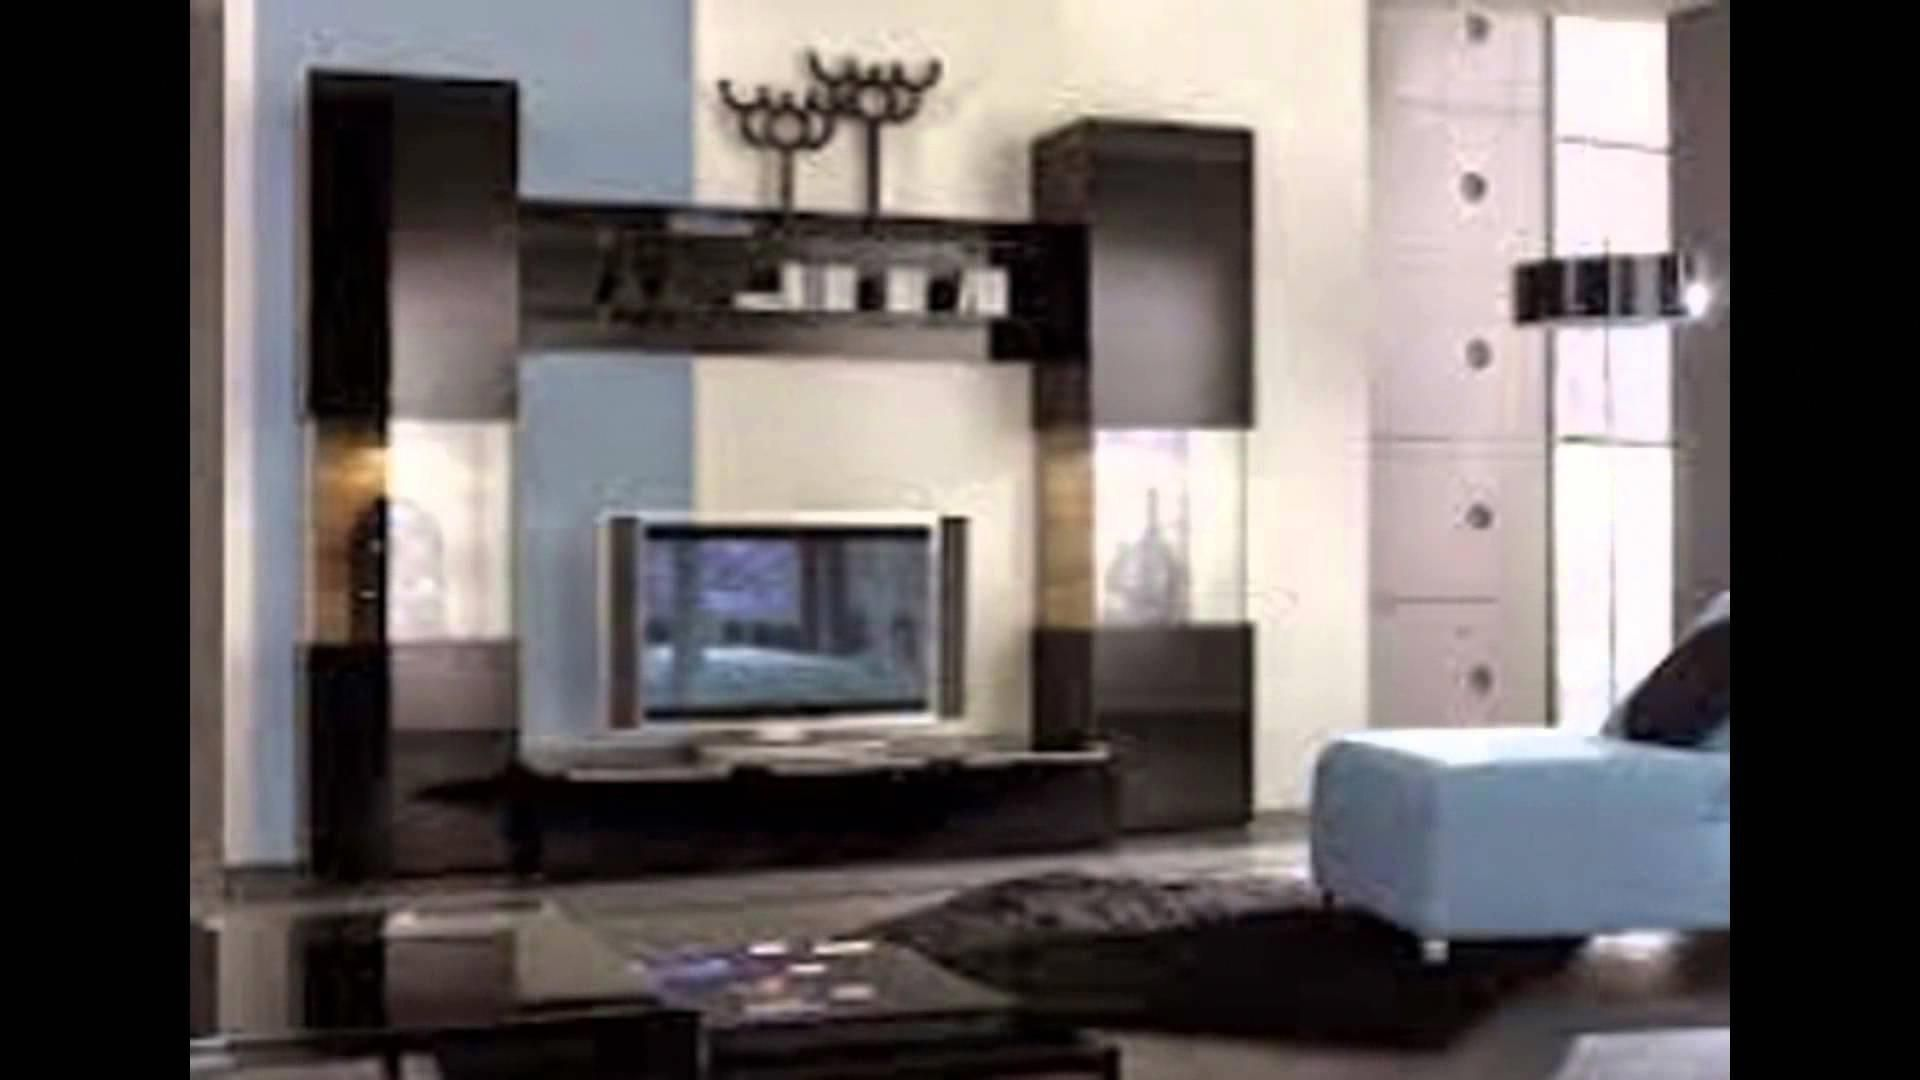 House decorating ideas on a budget inexpensive design ideas low cost interior design ideas 20181024